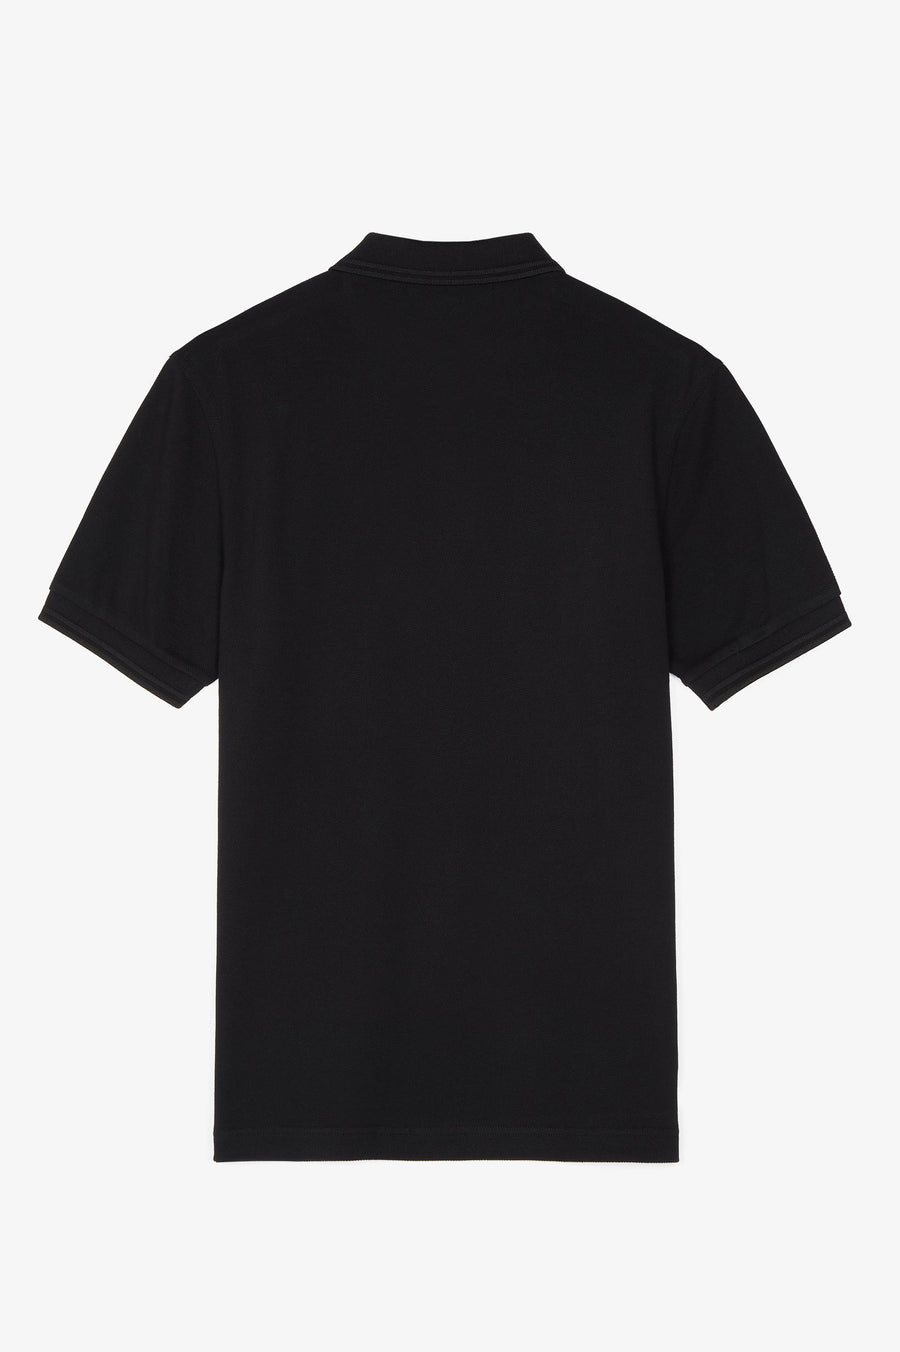 Twin Tipped Fred Perry Shirt / Black-Black-Black